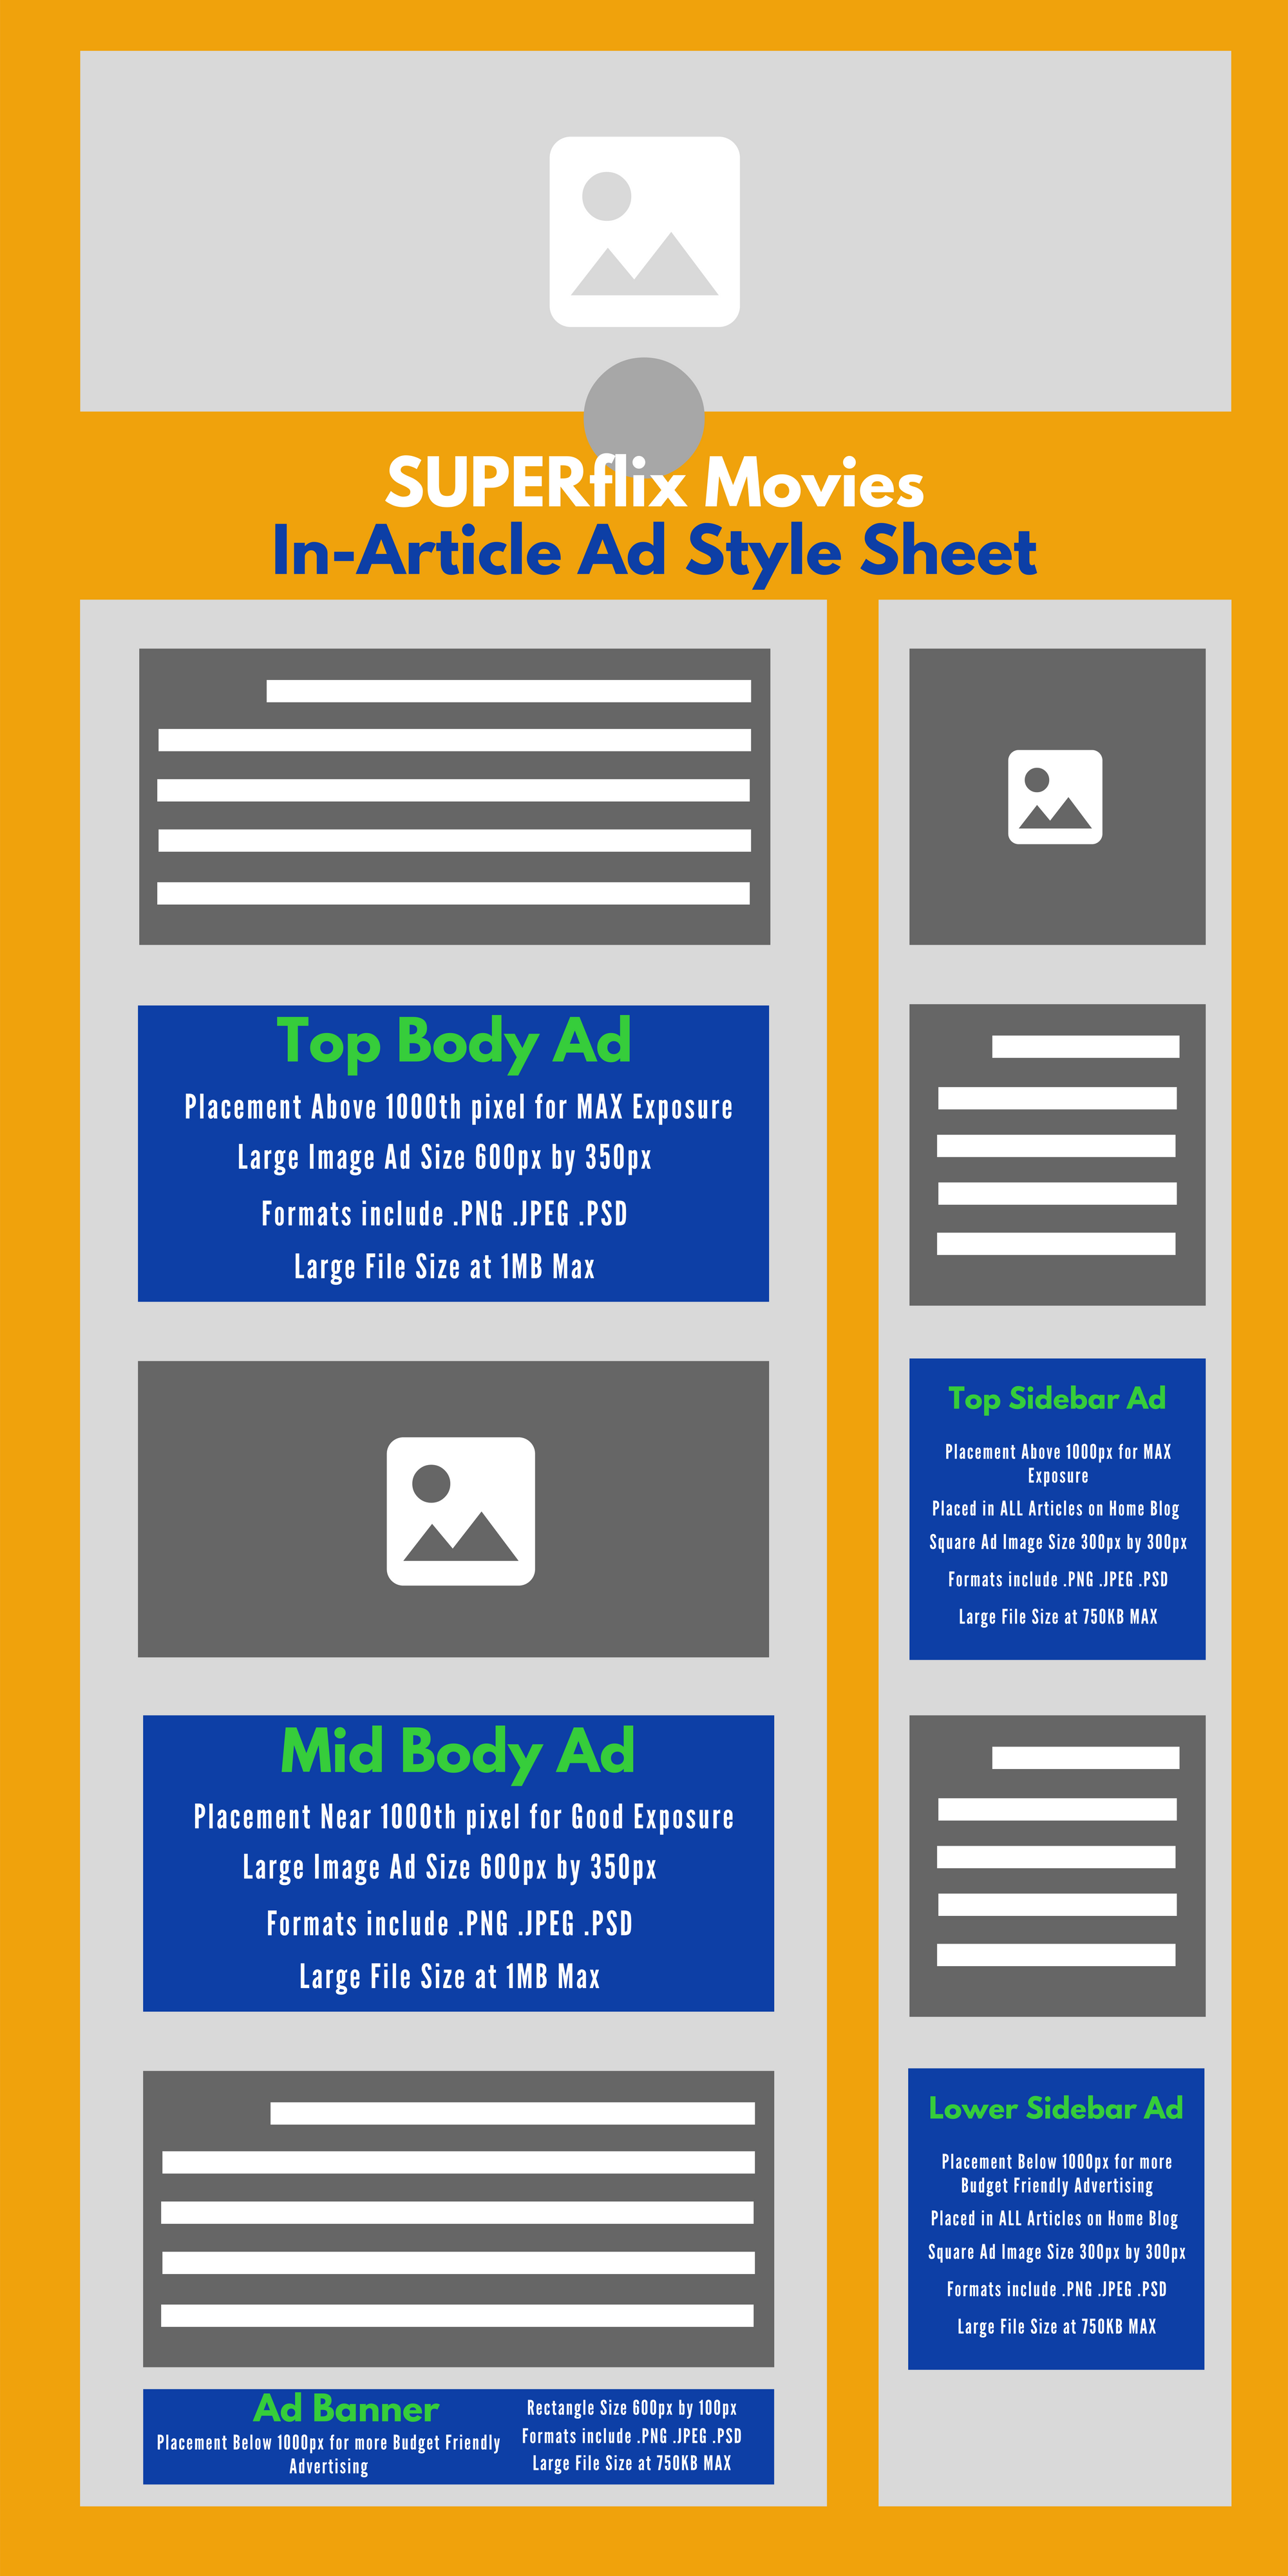 Click the image to view the In-Article Ad Style Sheet